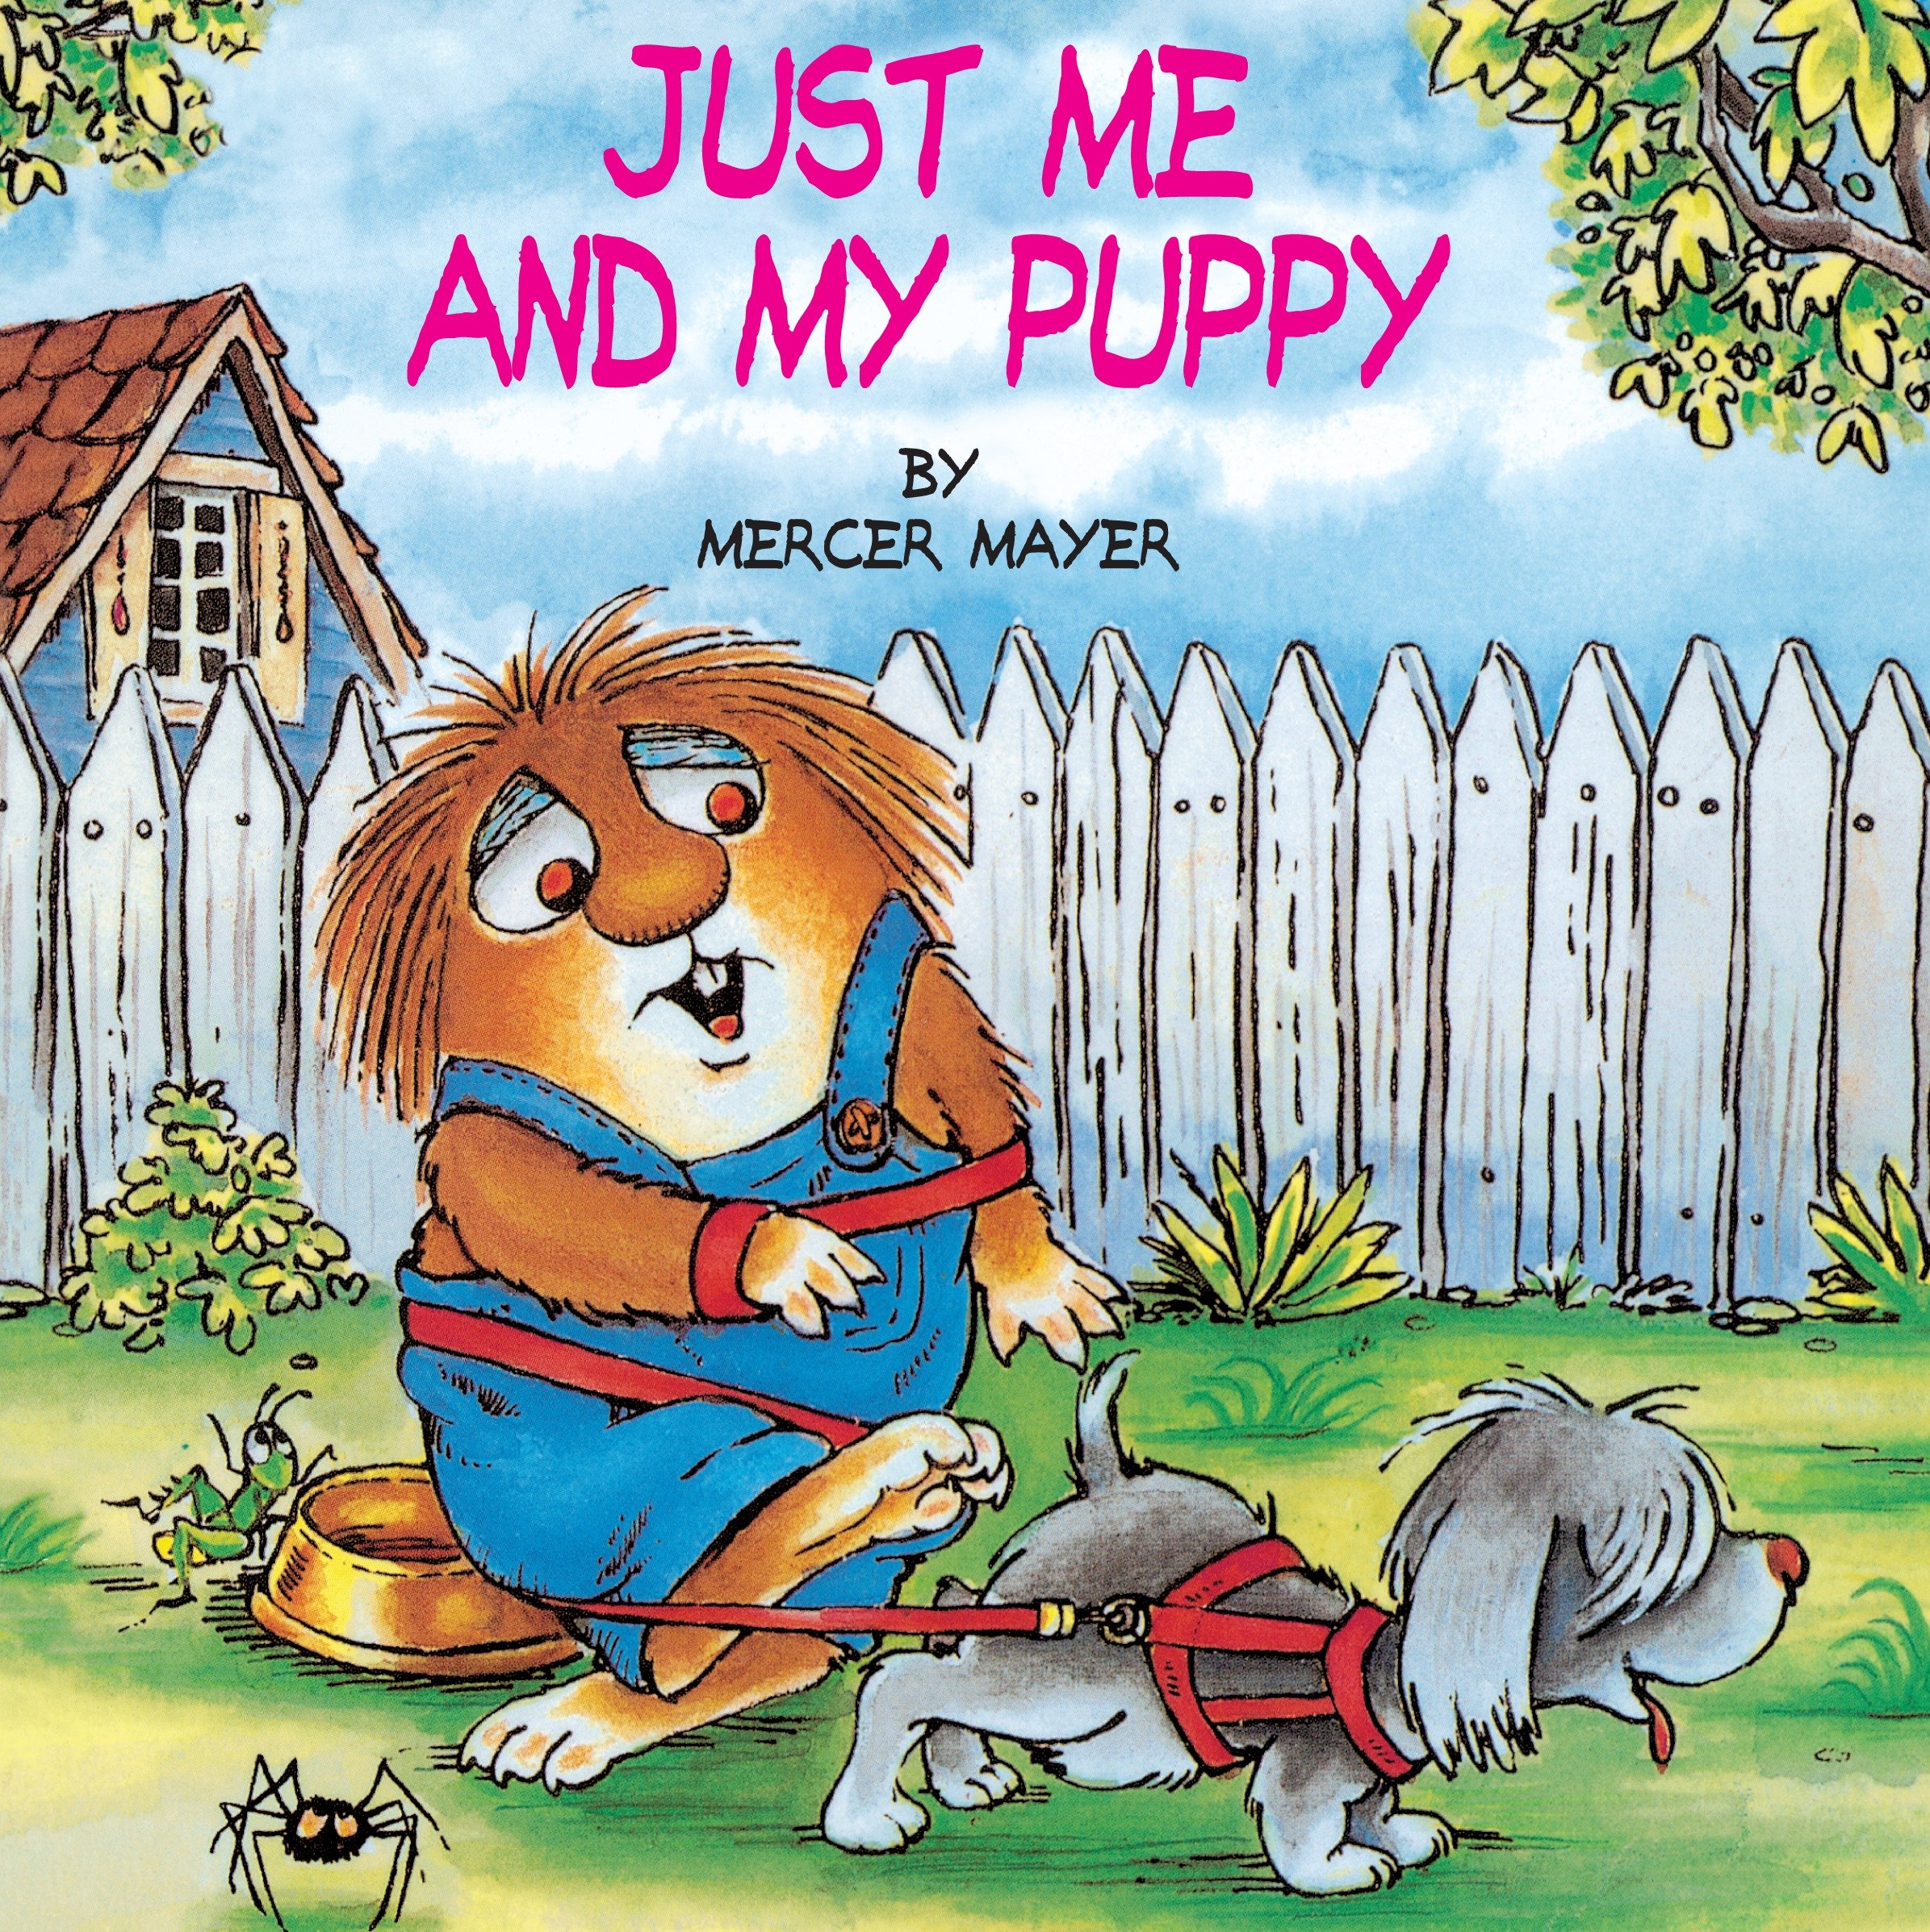 Book Just Me And My Puppy (little Critter) by Mercer Mayer